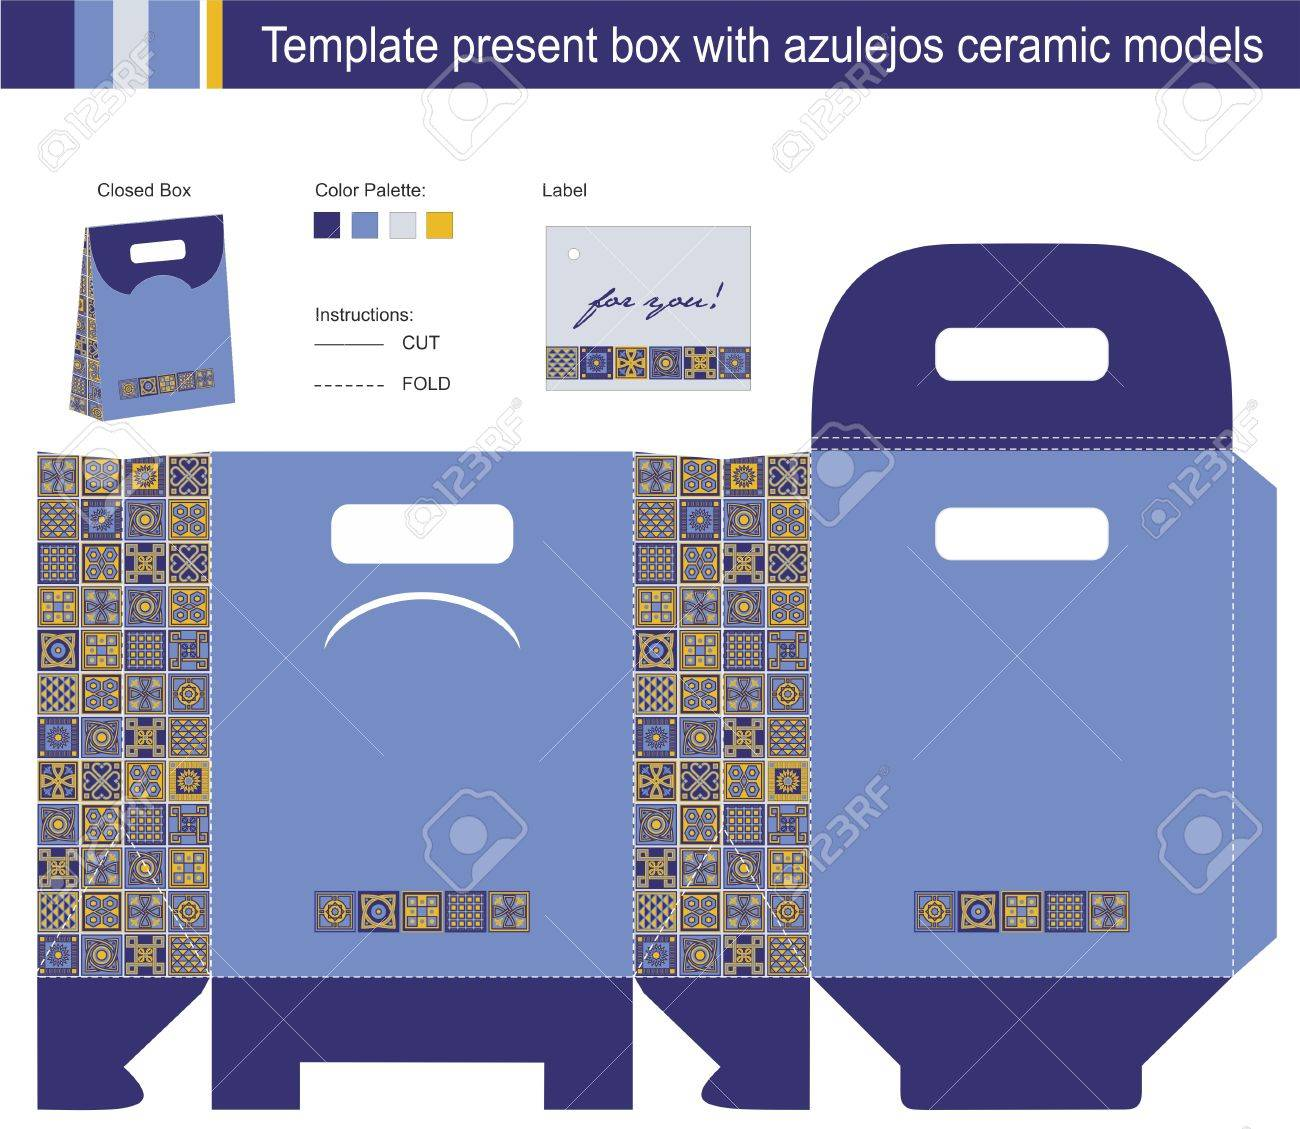 Template present box with azulejos ceramic models Stock Vector - 17207880